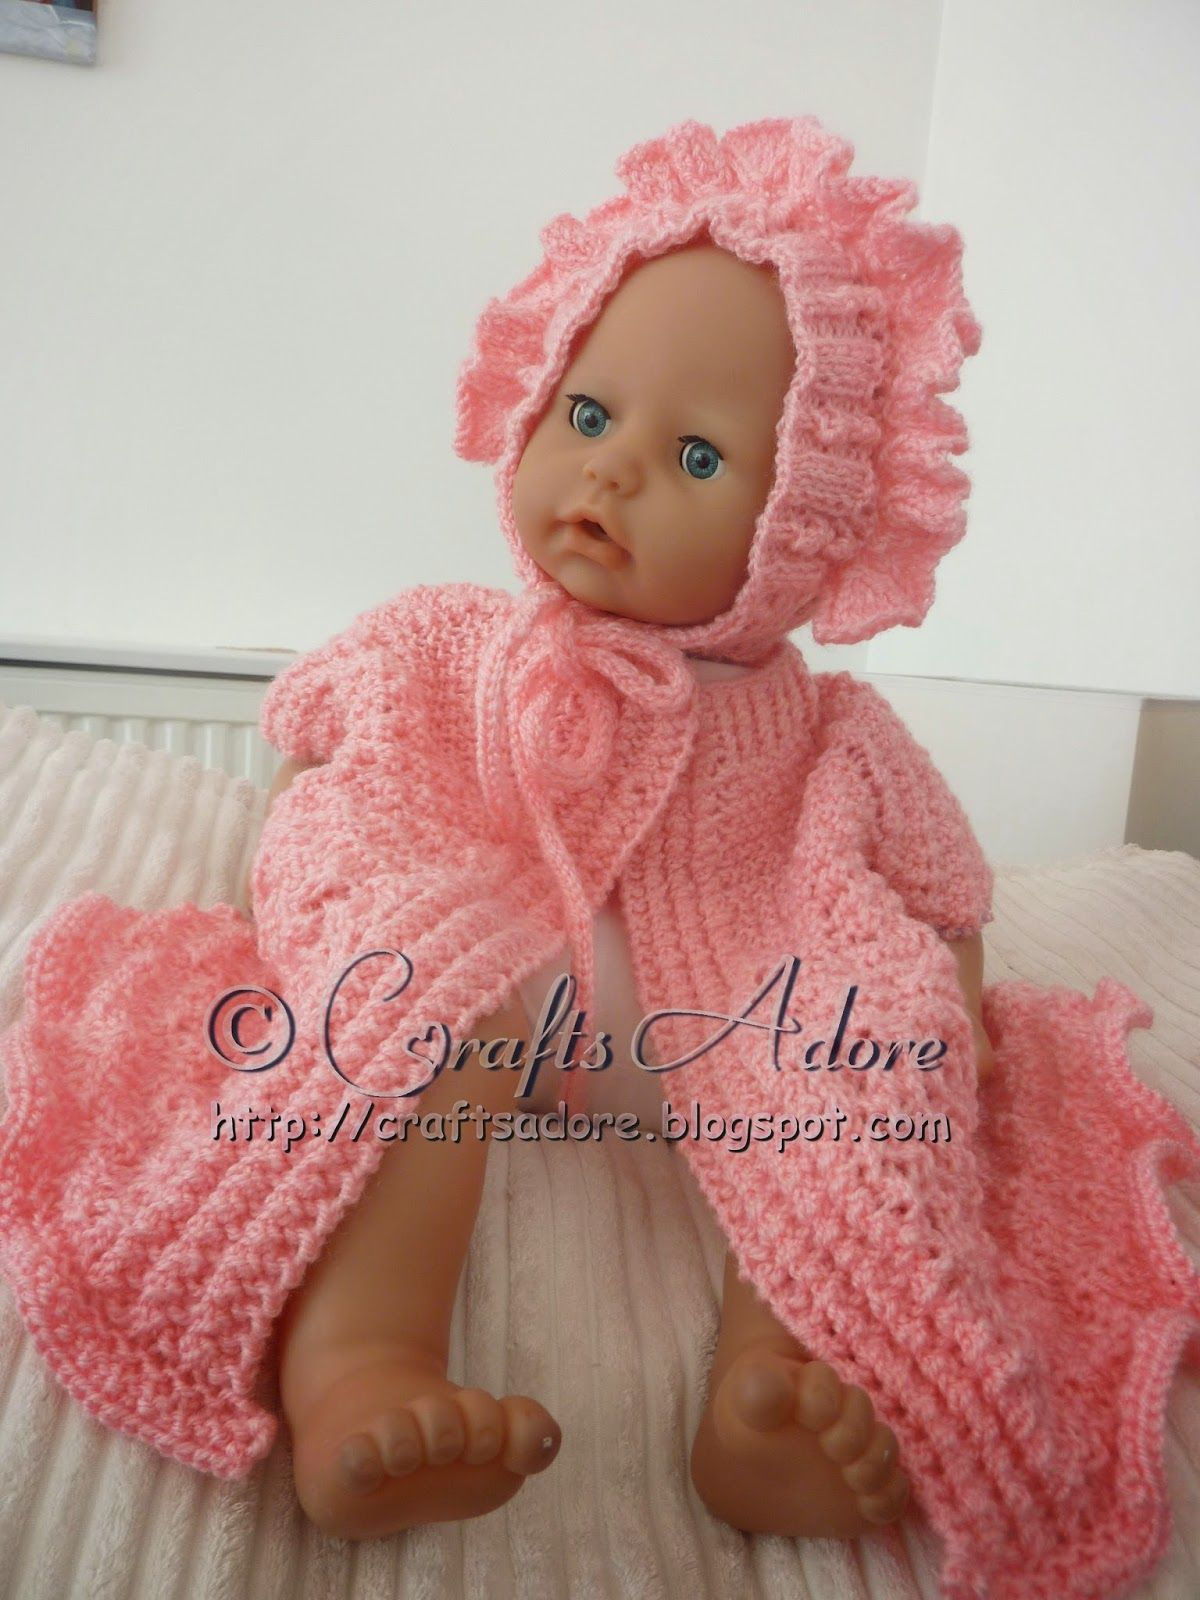 Knitted Baby Girl Layette Free Knitting Pattern | Baba klere ...